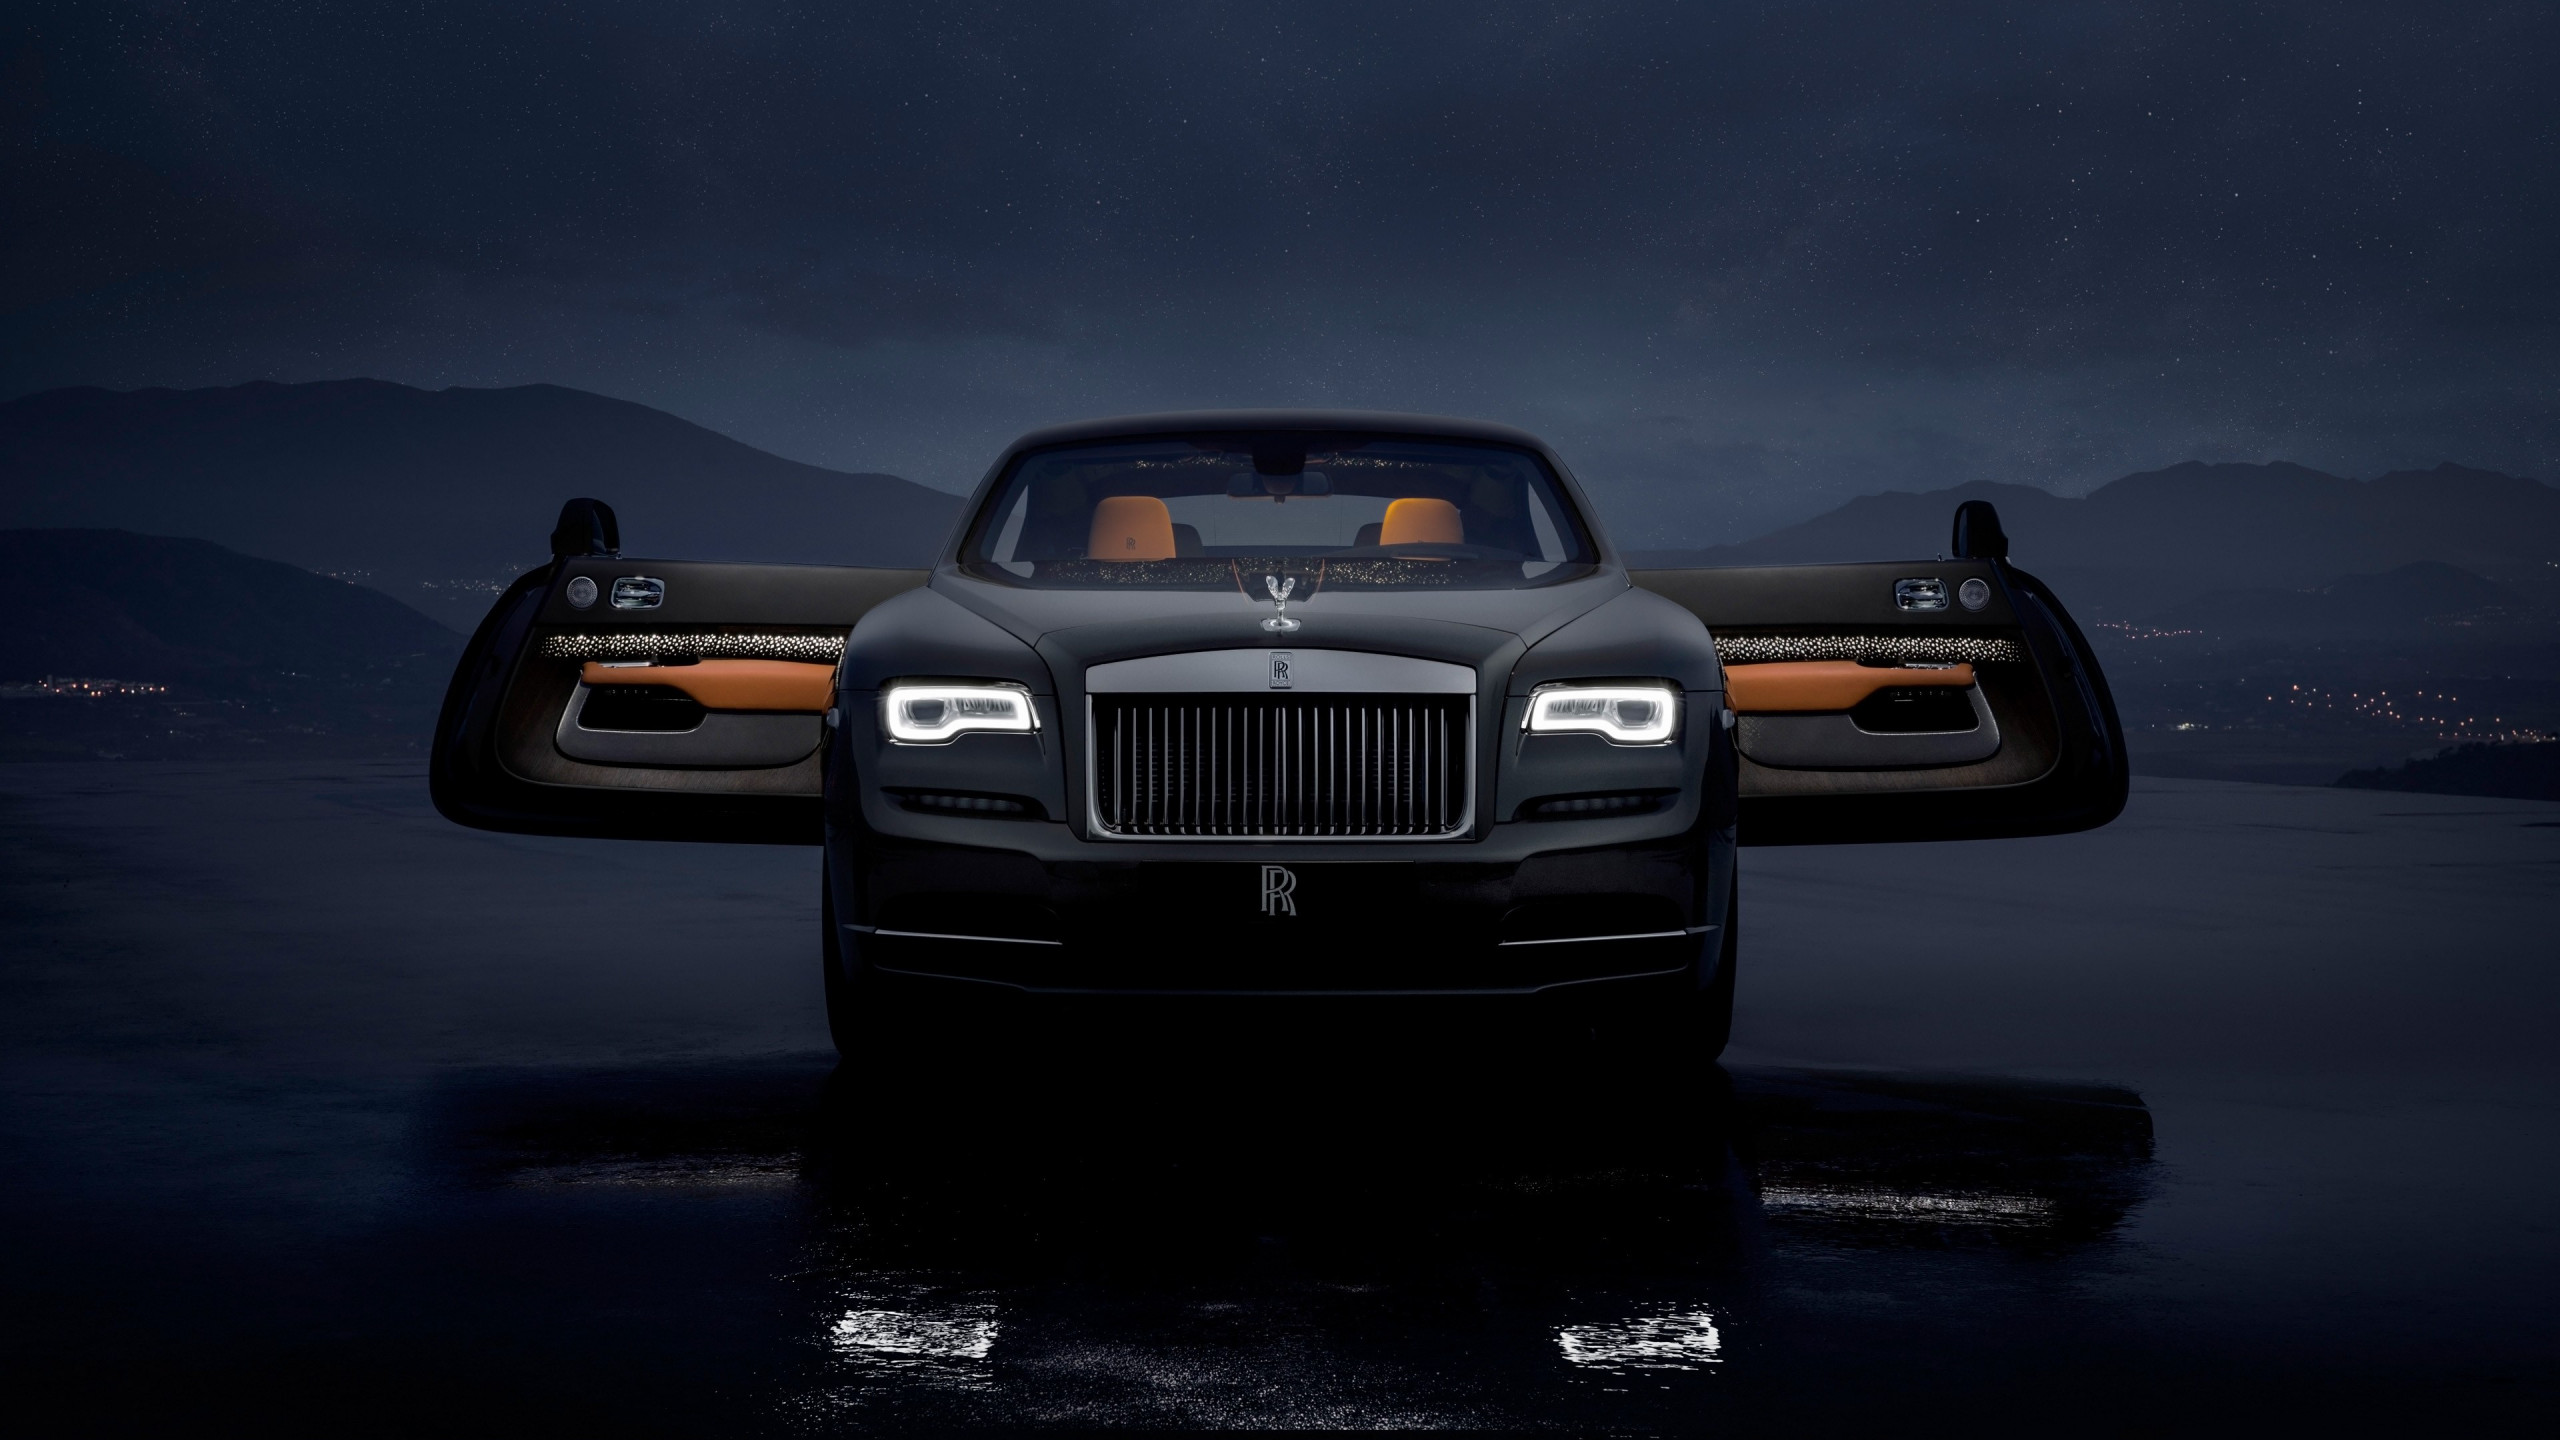 Rolls Royce Wraith Luminary Collection wallpaper 2560x1440